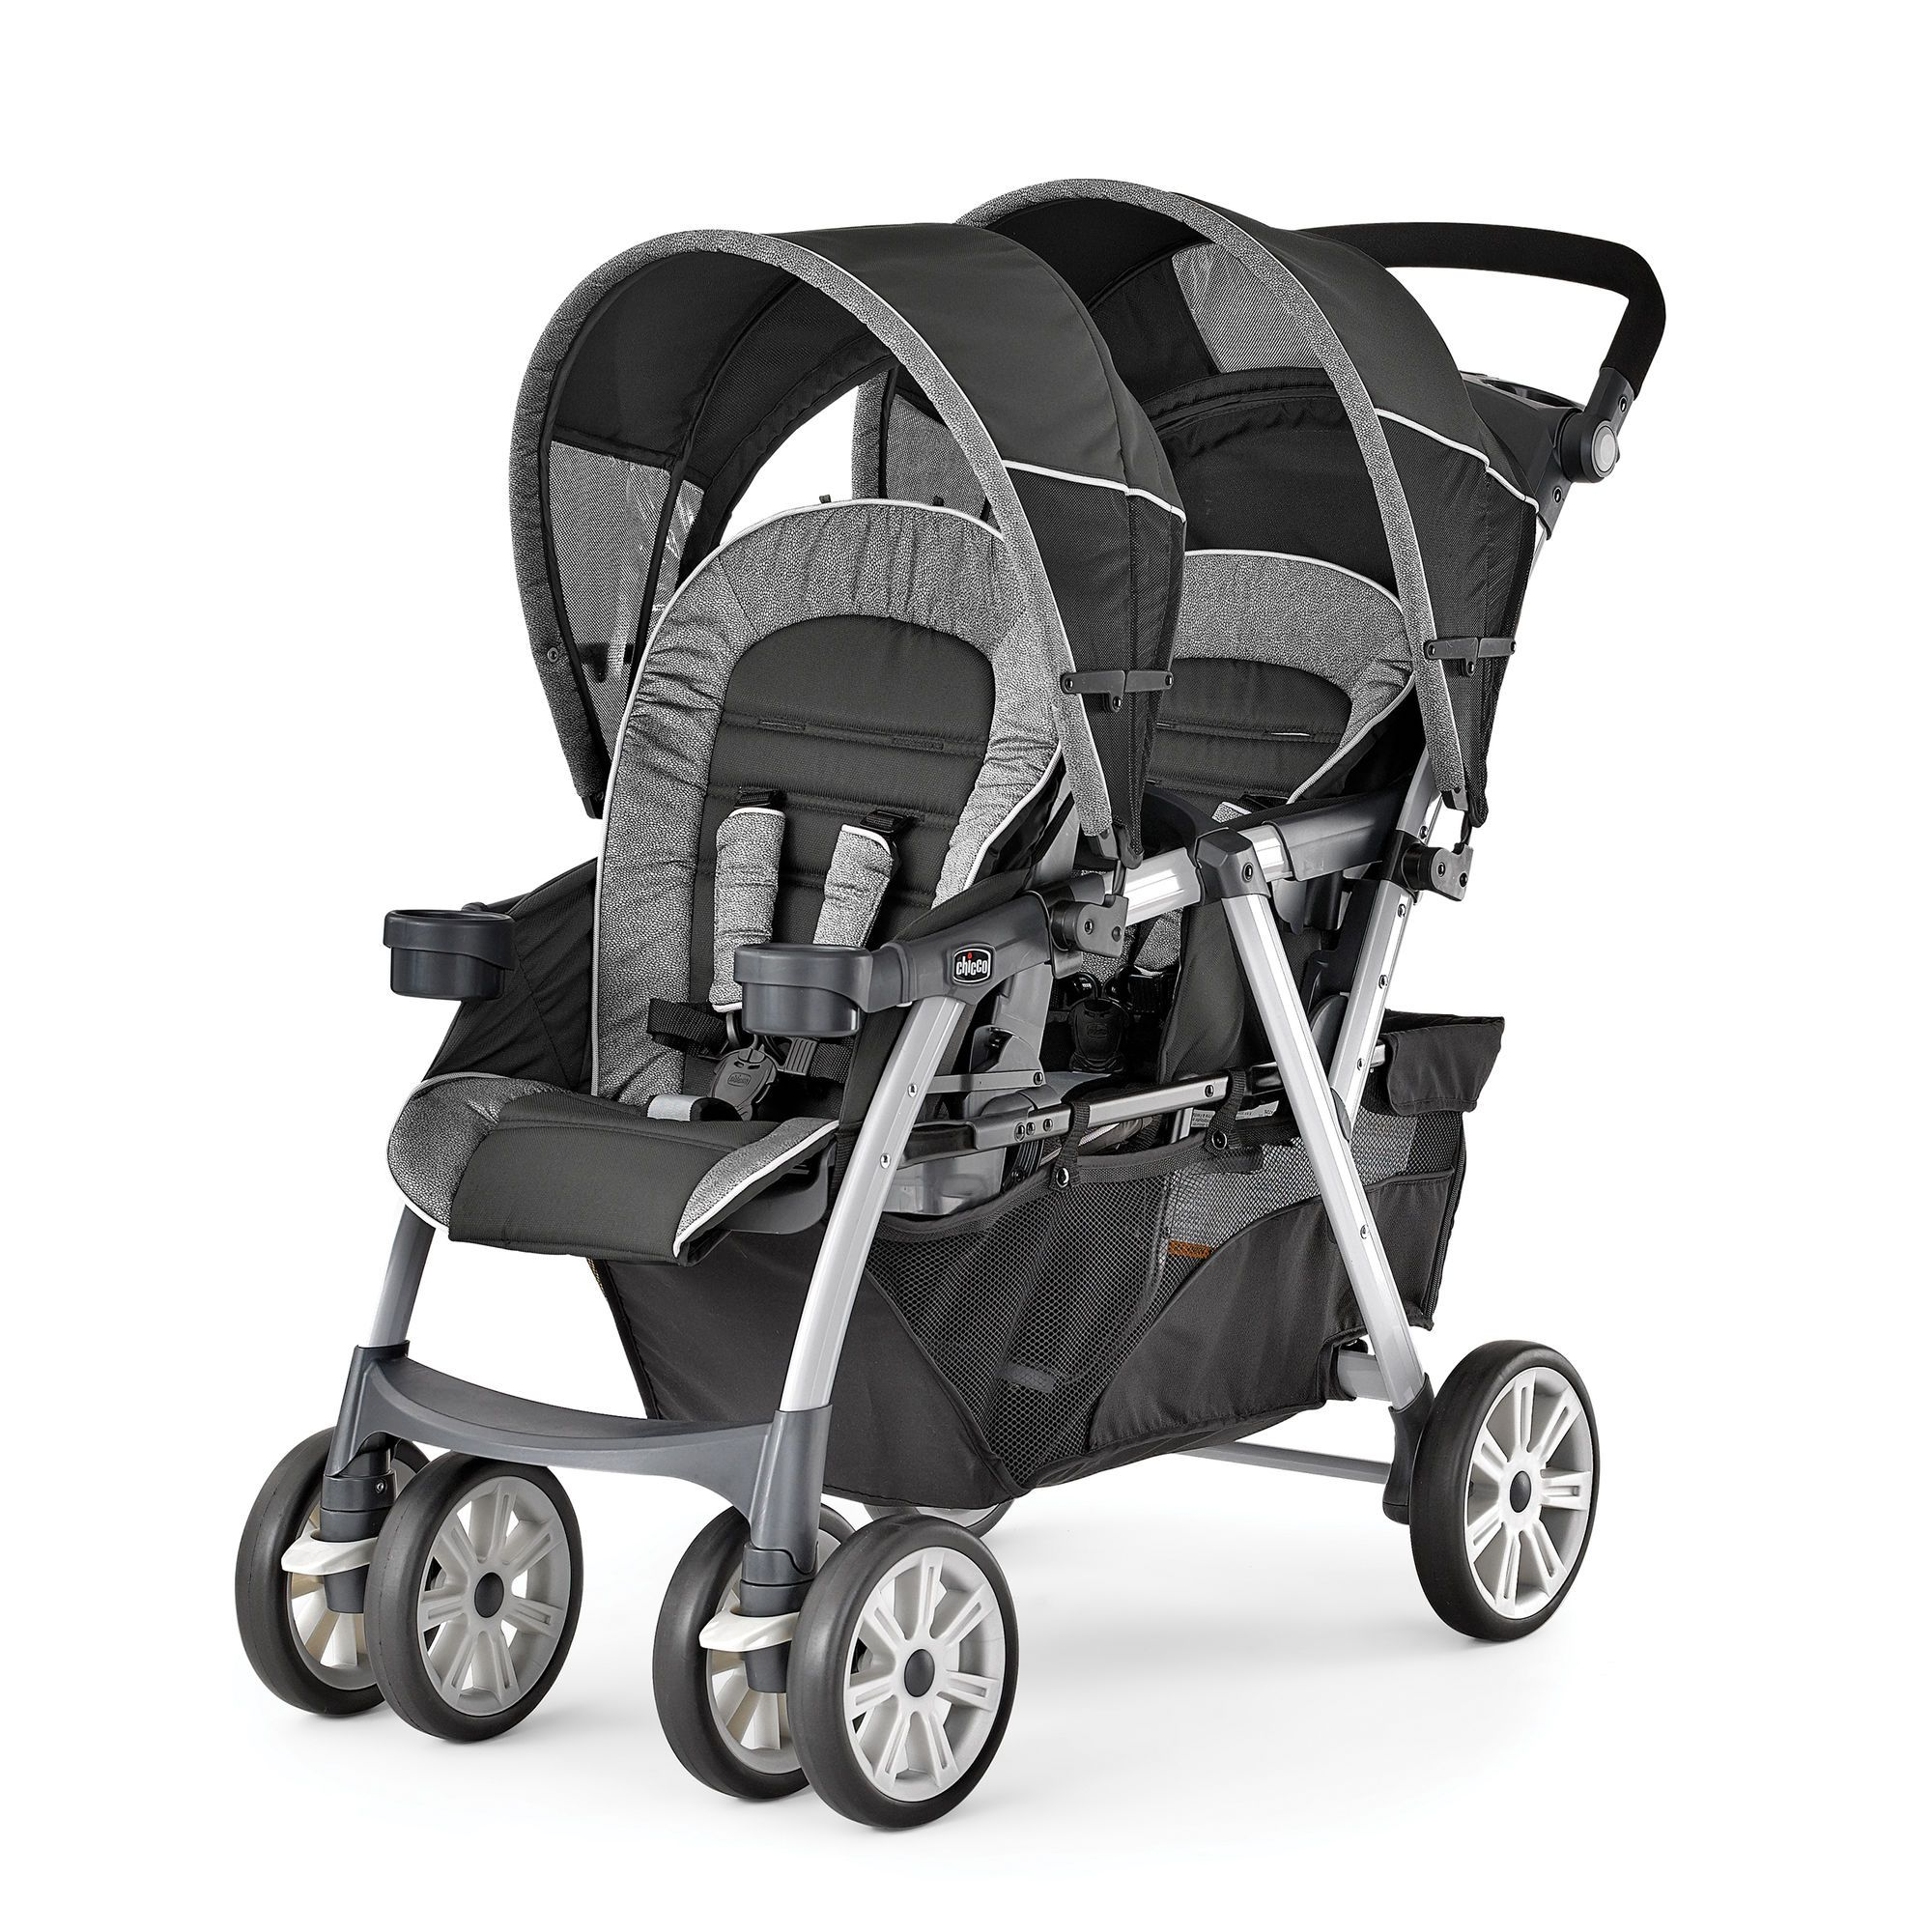 Chicco Cortina Together Double Stroller In Black Gray And Silver